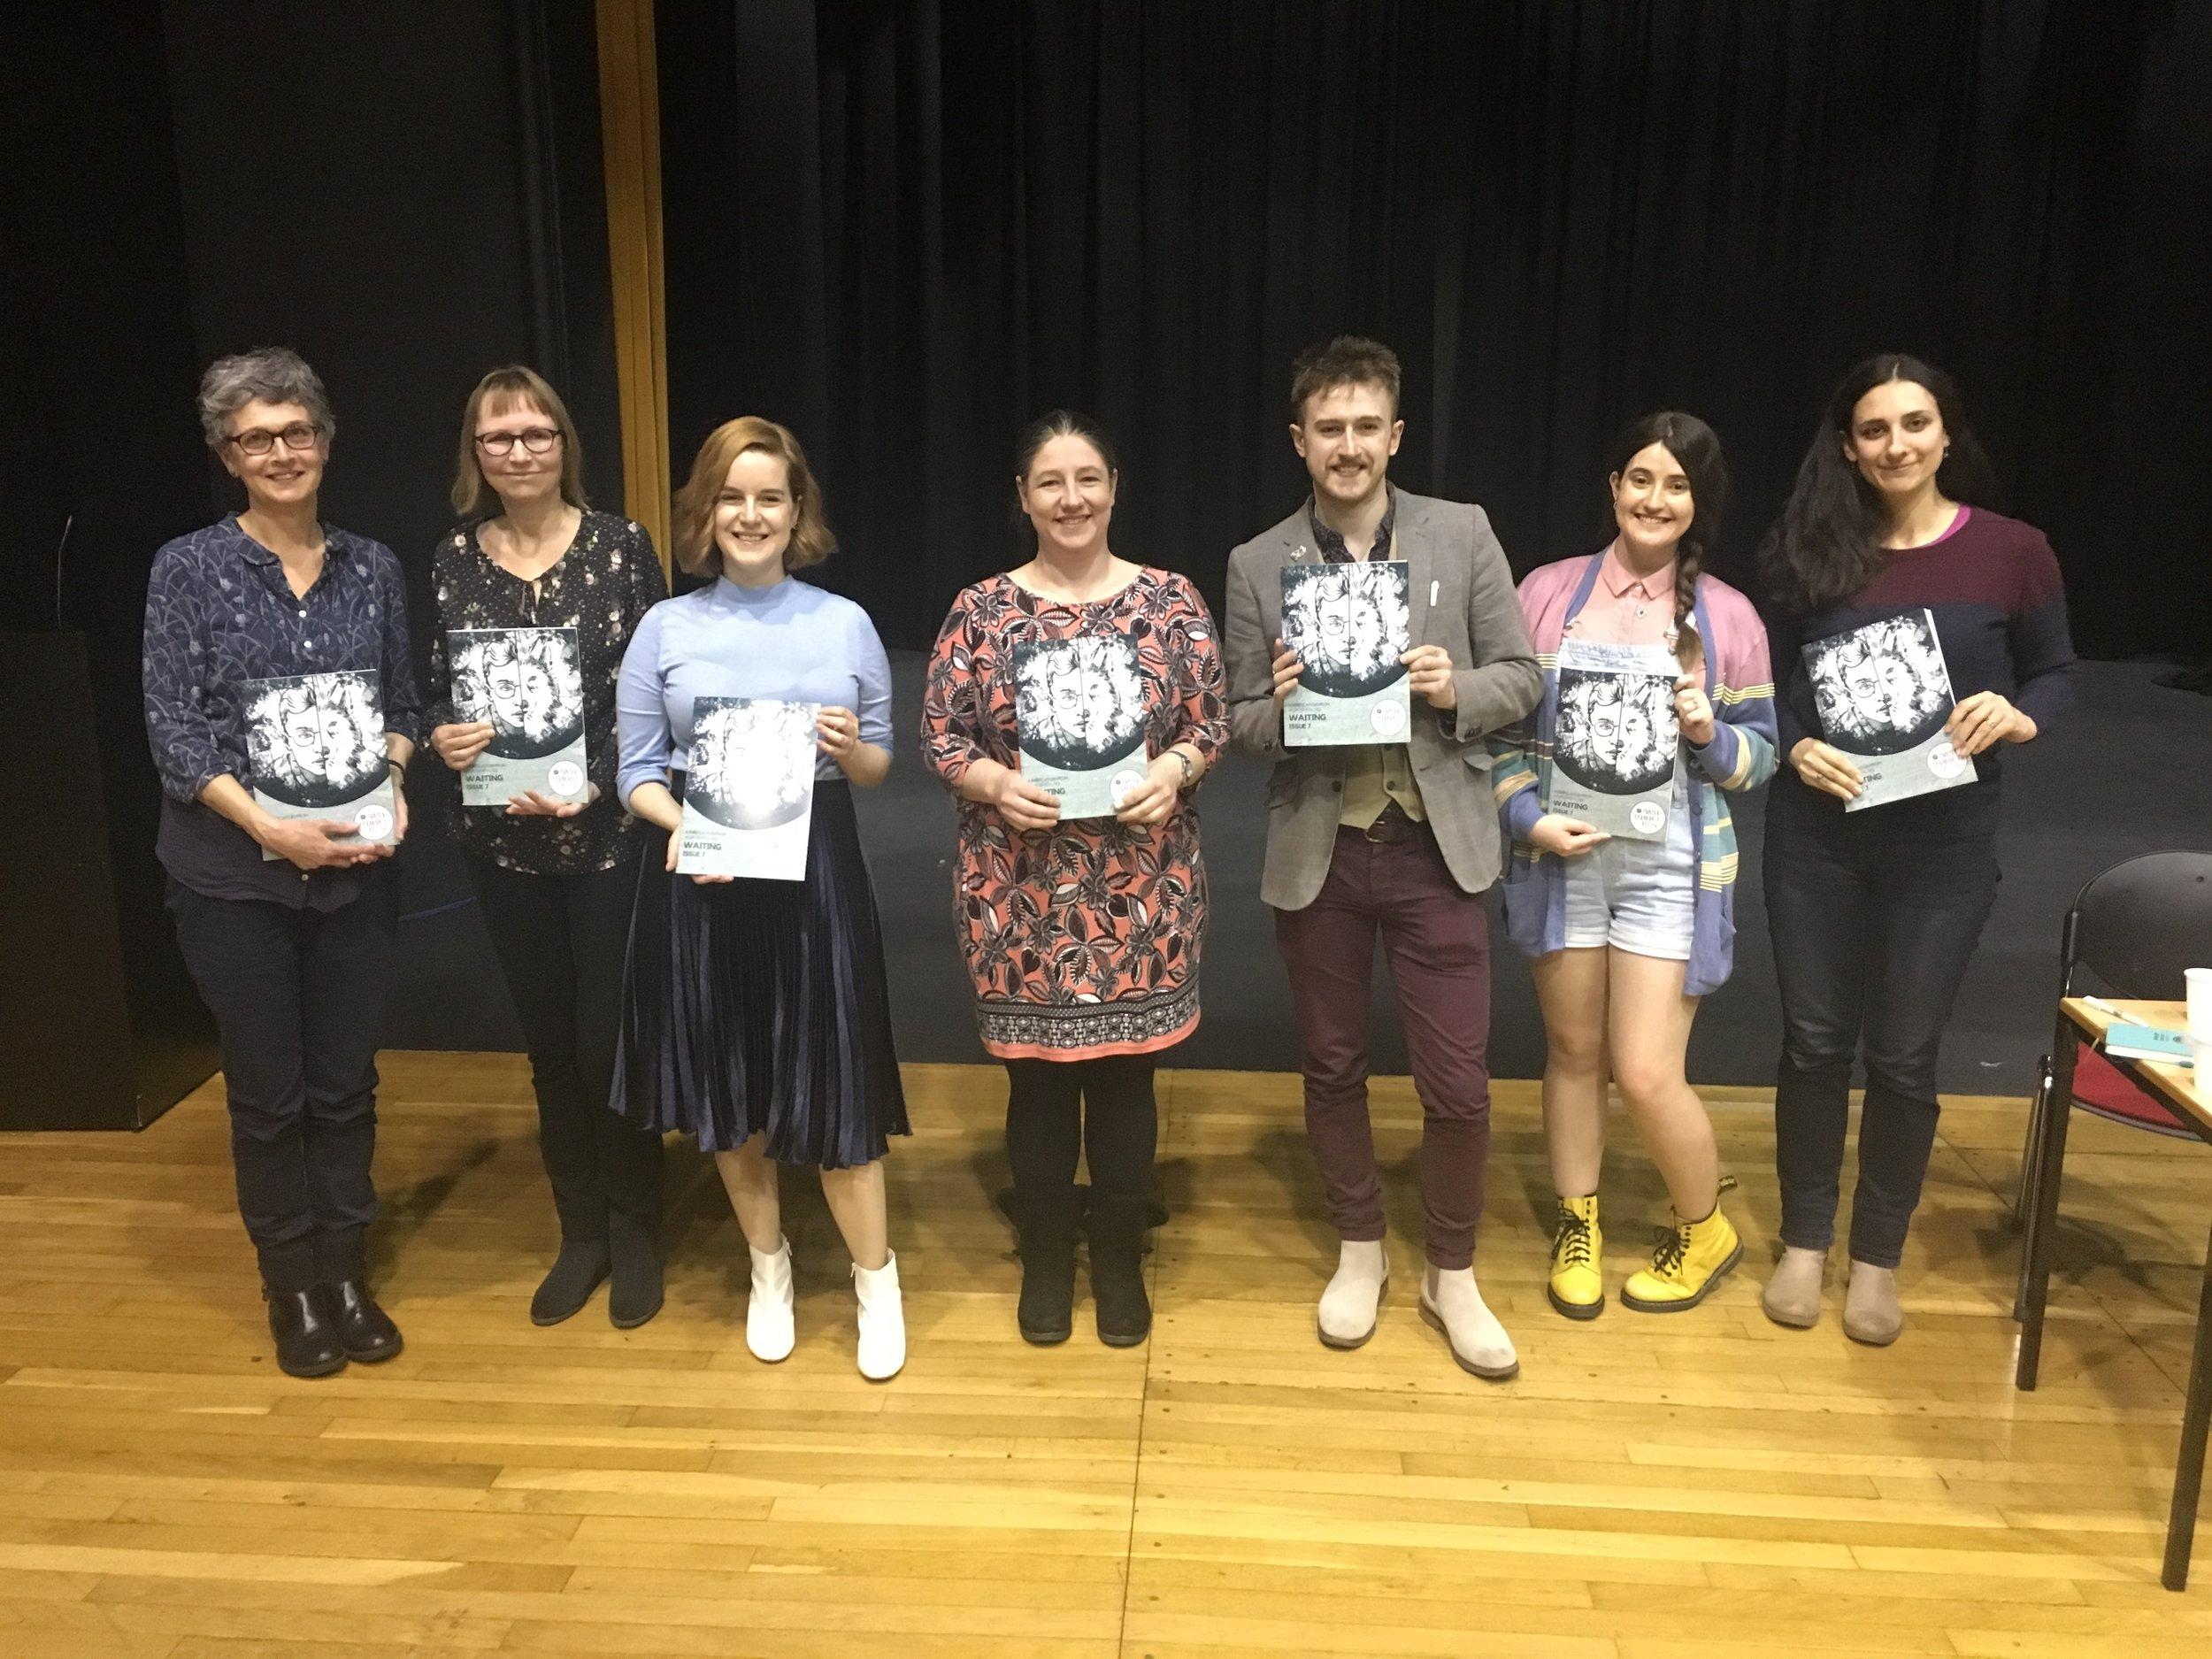 We ended the launch with a group picture of our seven published writers that were able to be here to read and to celebrate this momentous occasion with us!  From left to right: Sarah, Clare, Hayley, Sarah H, Rupert, Amy and Kristina.  With thanks to our other 16 writers published in this issue and all those who attended, supported, worked on and have purchased this issue.